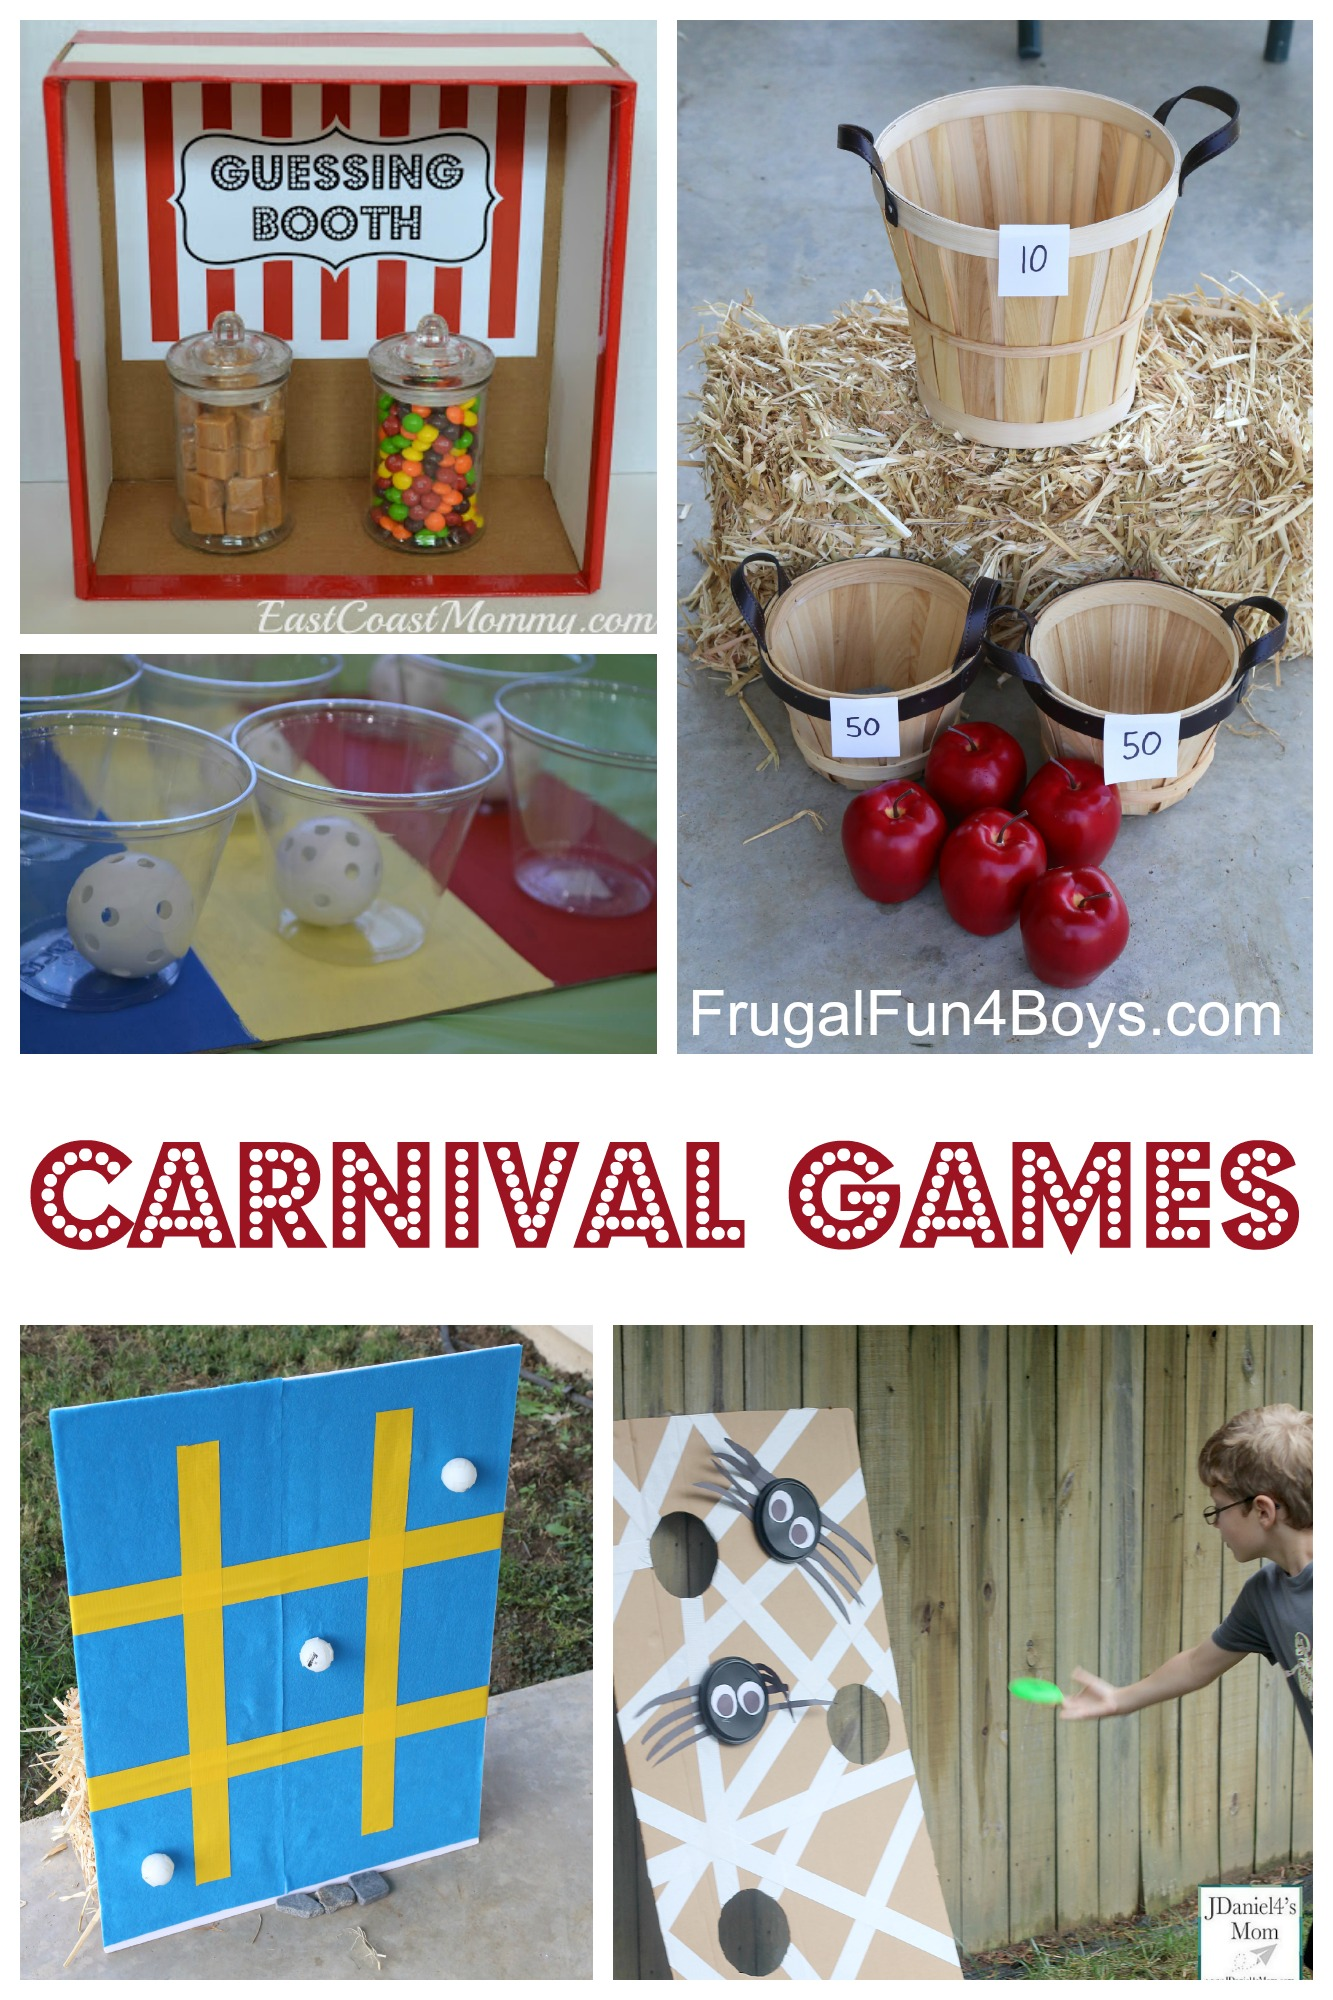 25+ Carnival Games for Kids! Fun for a family game night, church carnival, or school carnival